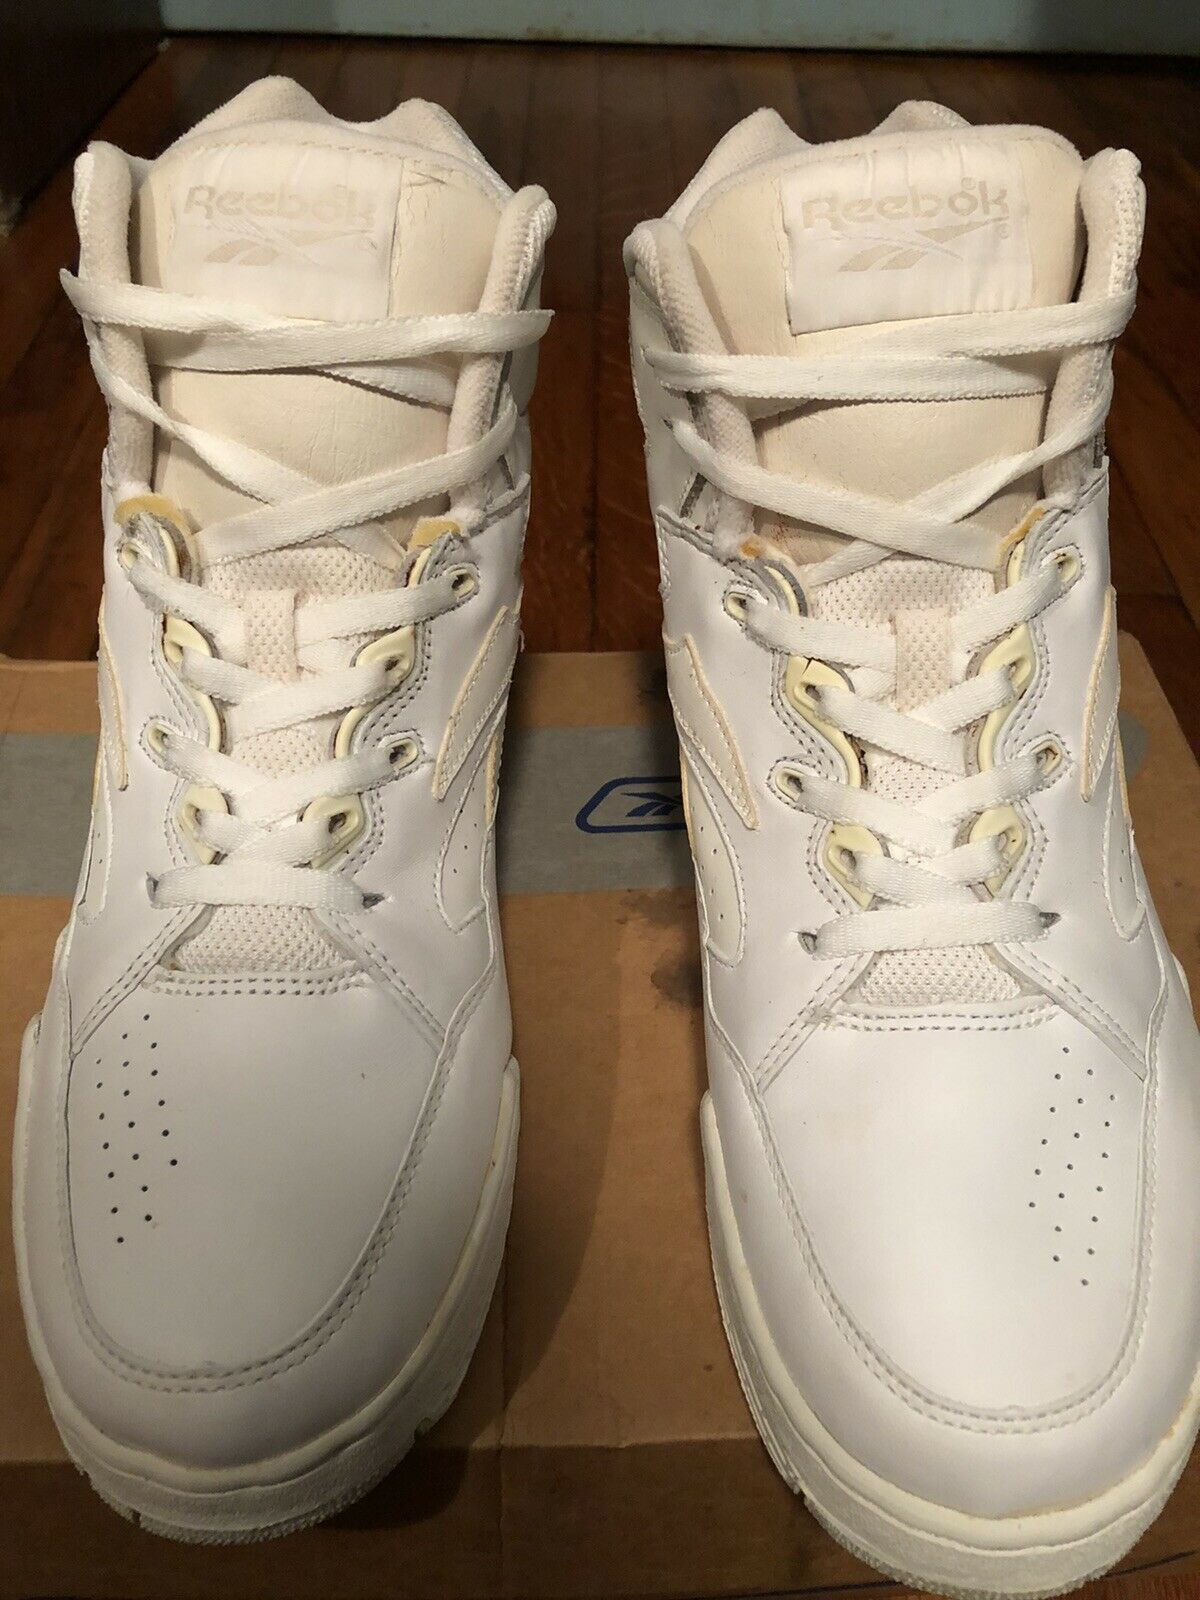 White And Natural Reebok Sneakers - image 2